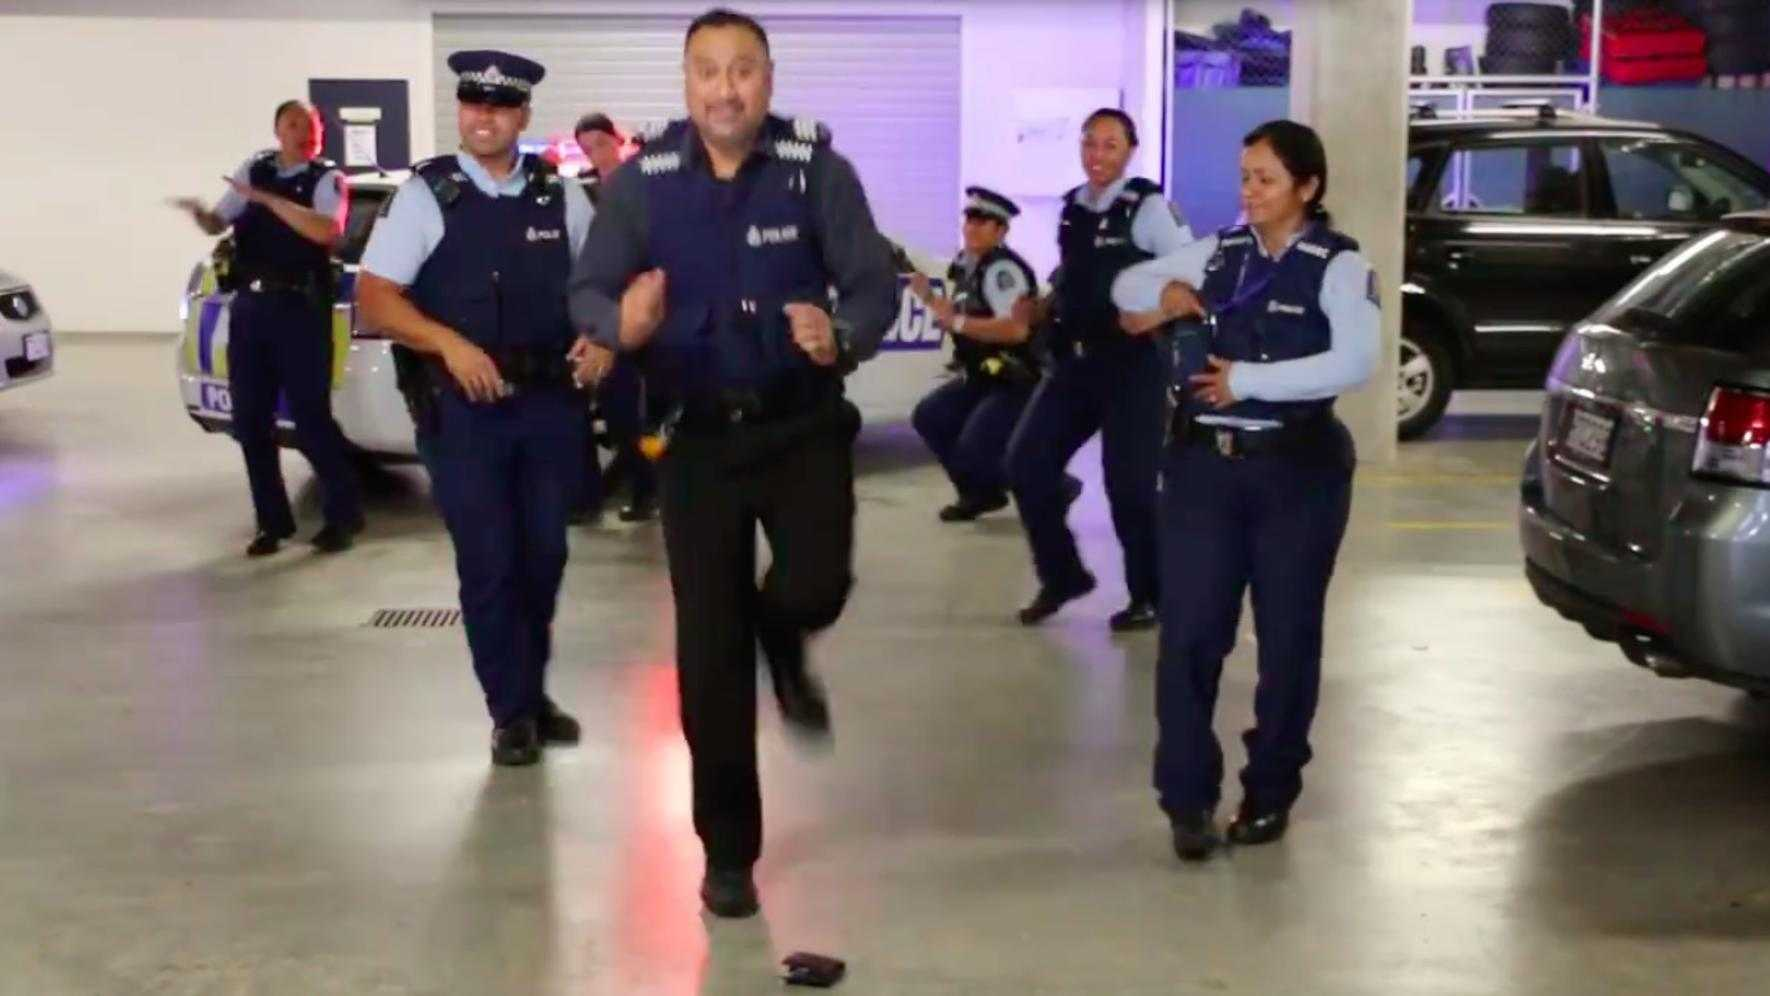 Running Man Challenge Song NY Police NYPD Video Facebook